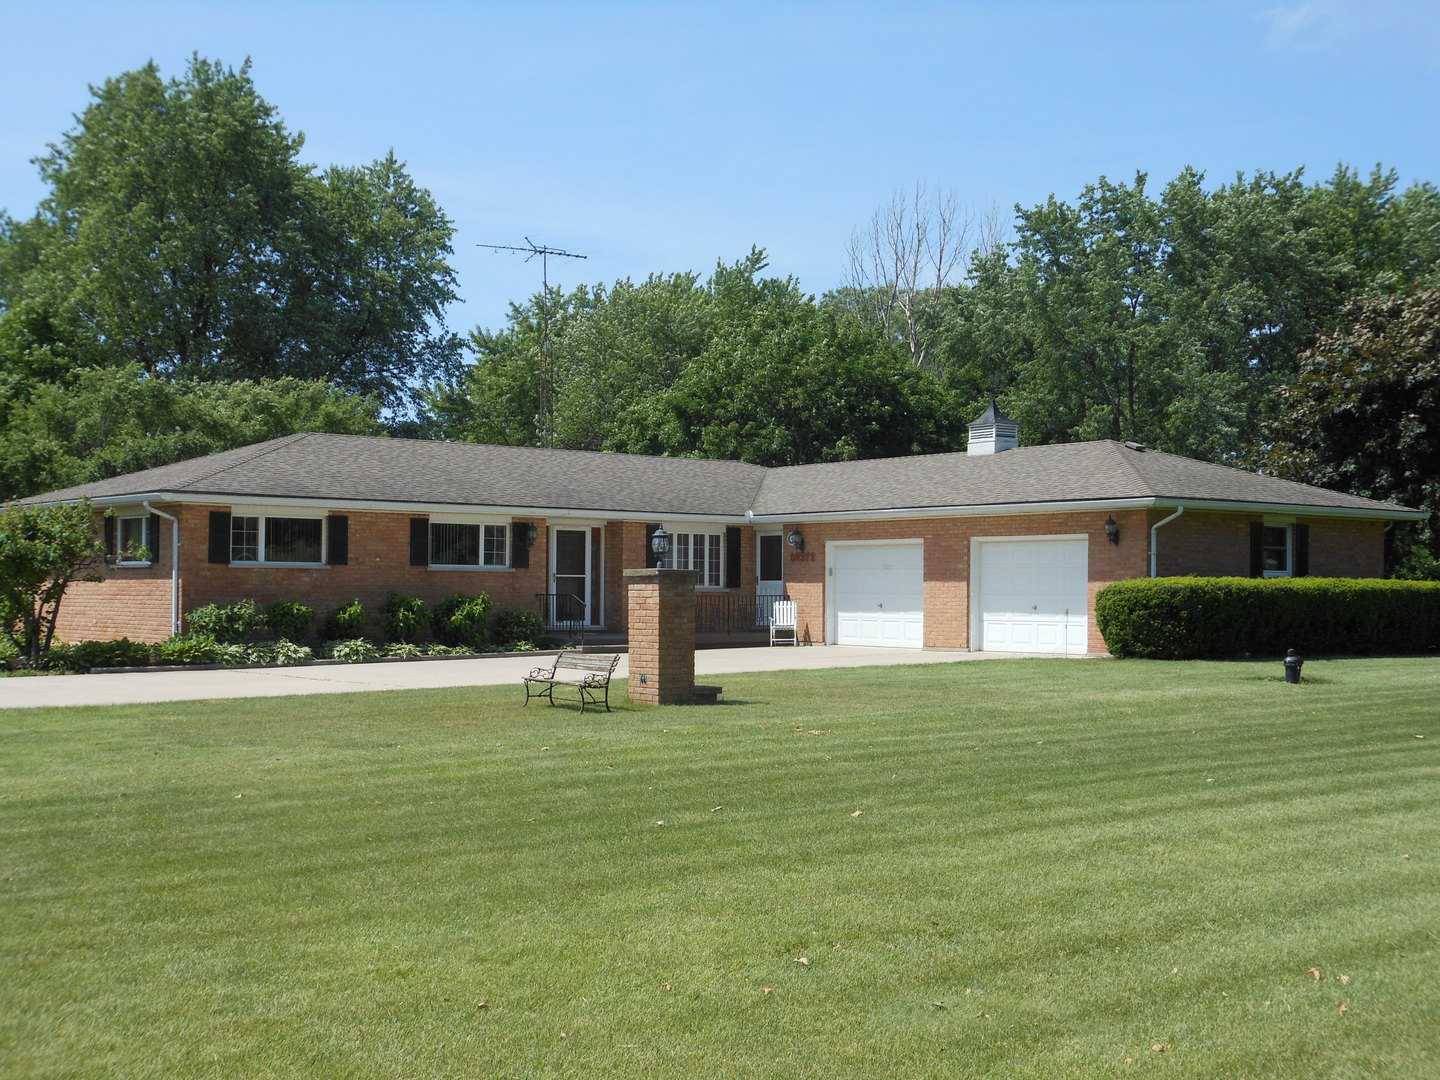 0N972 SHADE TREE LANE, MAPLE PARK, IL 60151